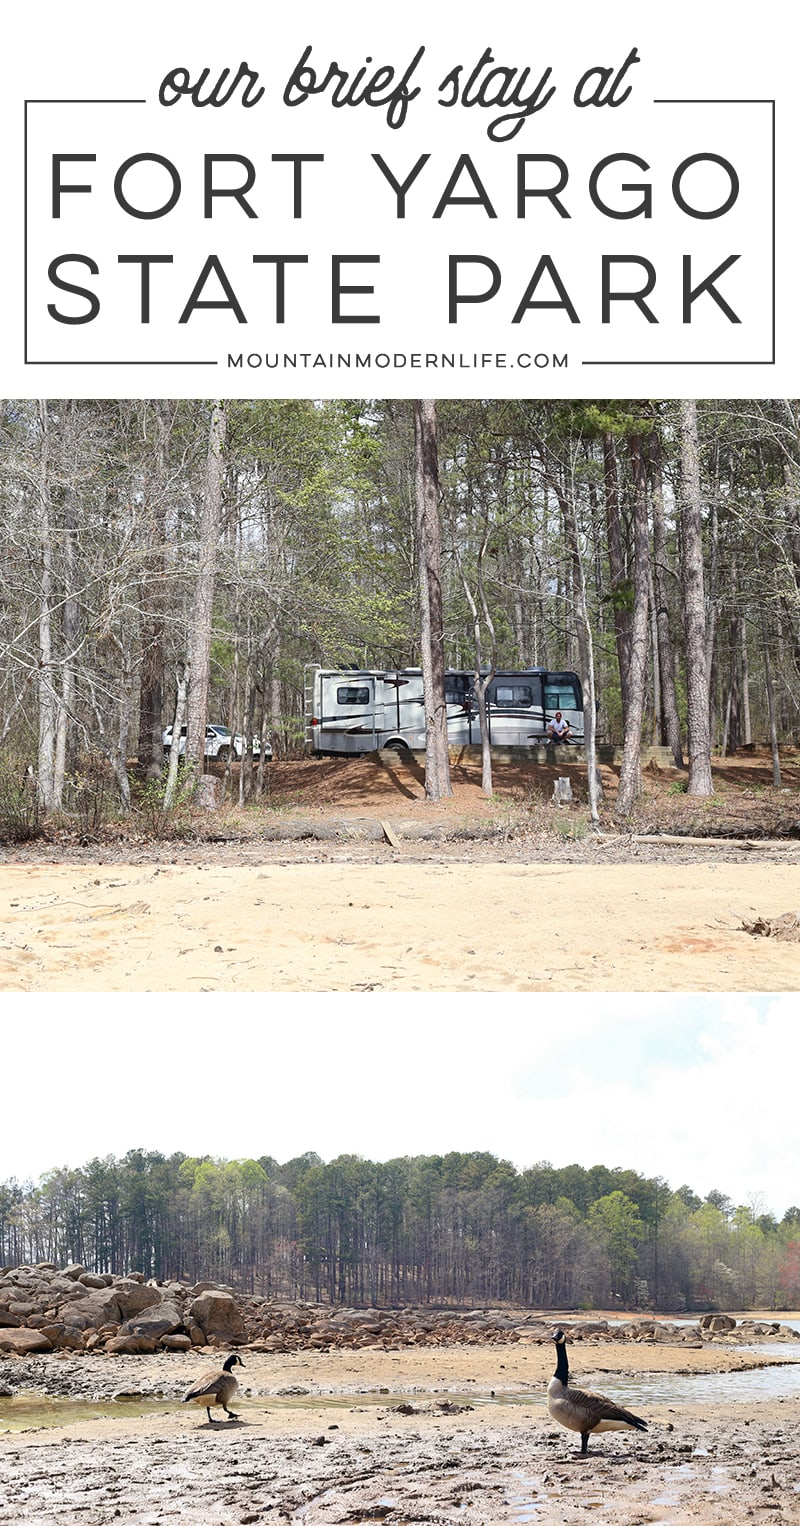 Looking for a RV campground to stay at while traveling through Georgia? Come check out our experience at Fort Yargo State Park. MountainModernLife.com